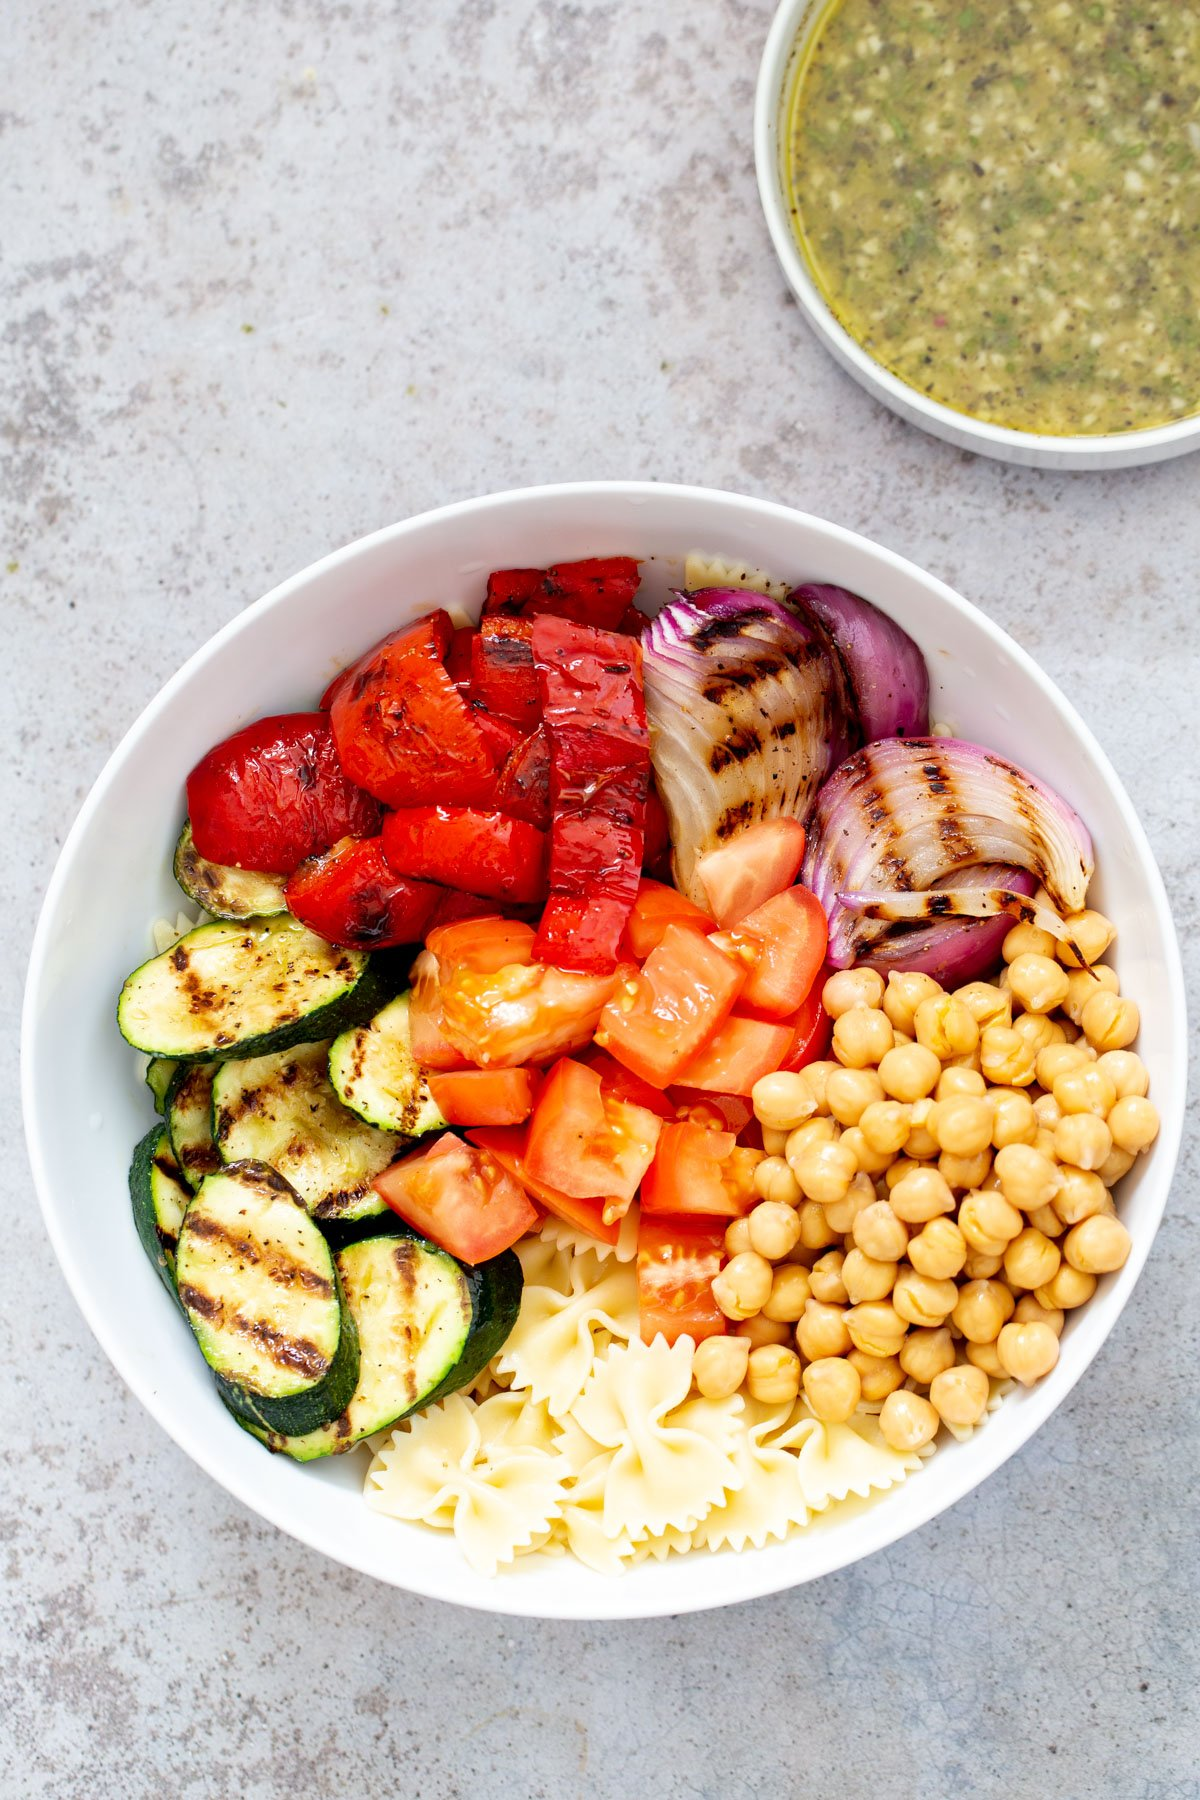 ingredients for vegan pasta salad with grilled vegetables and chickpeas all arranged in a bowl with a dish with dressing on the side